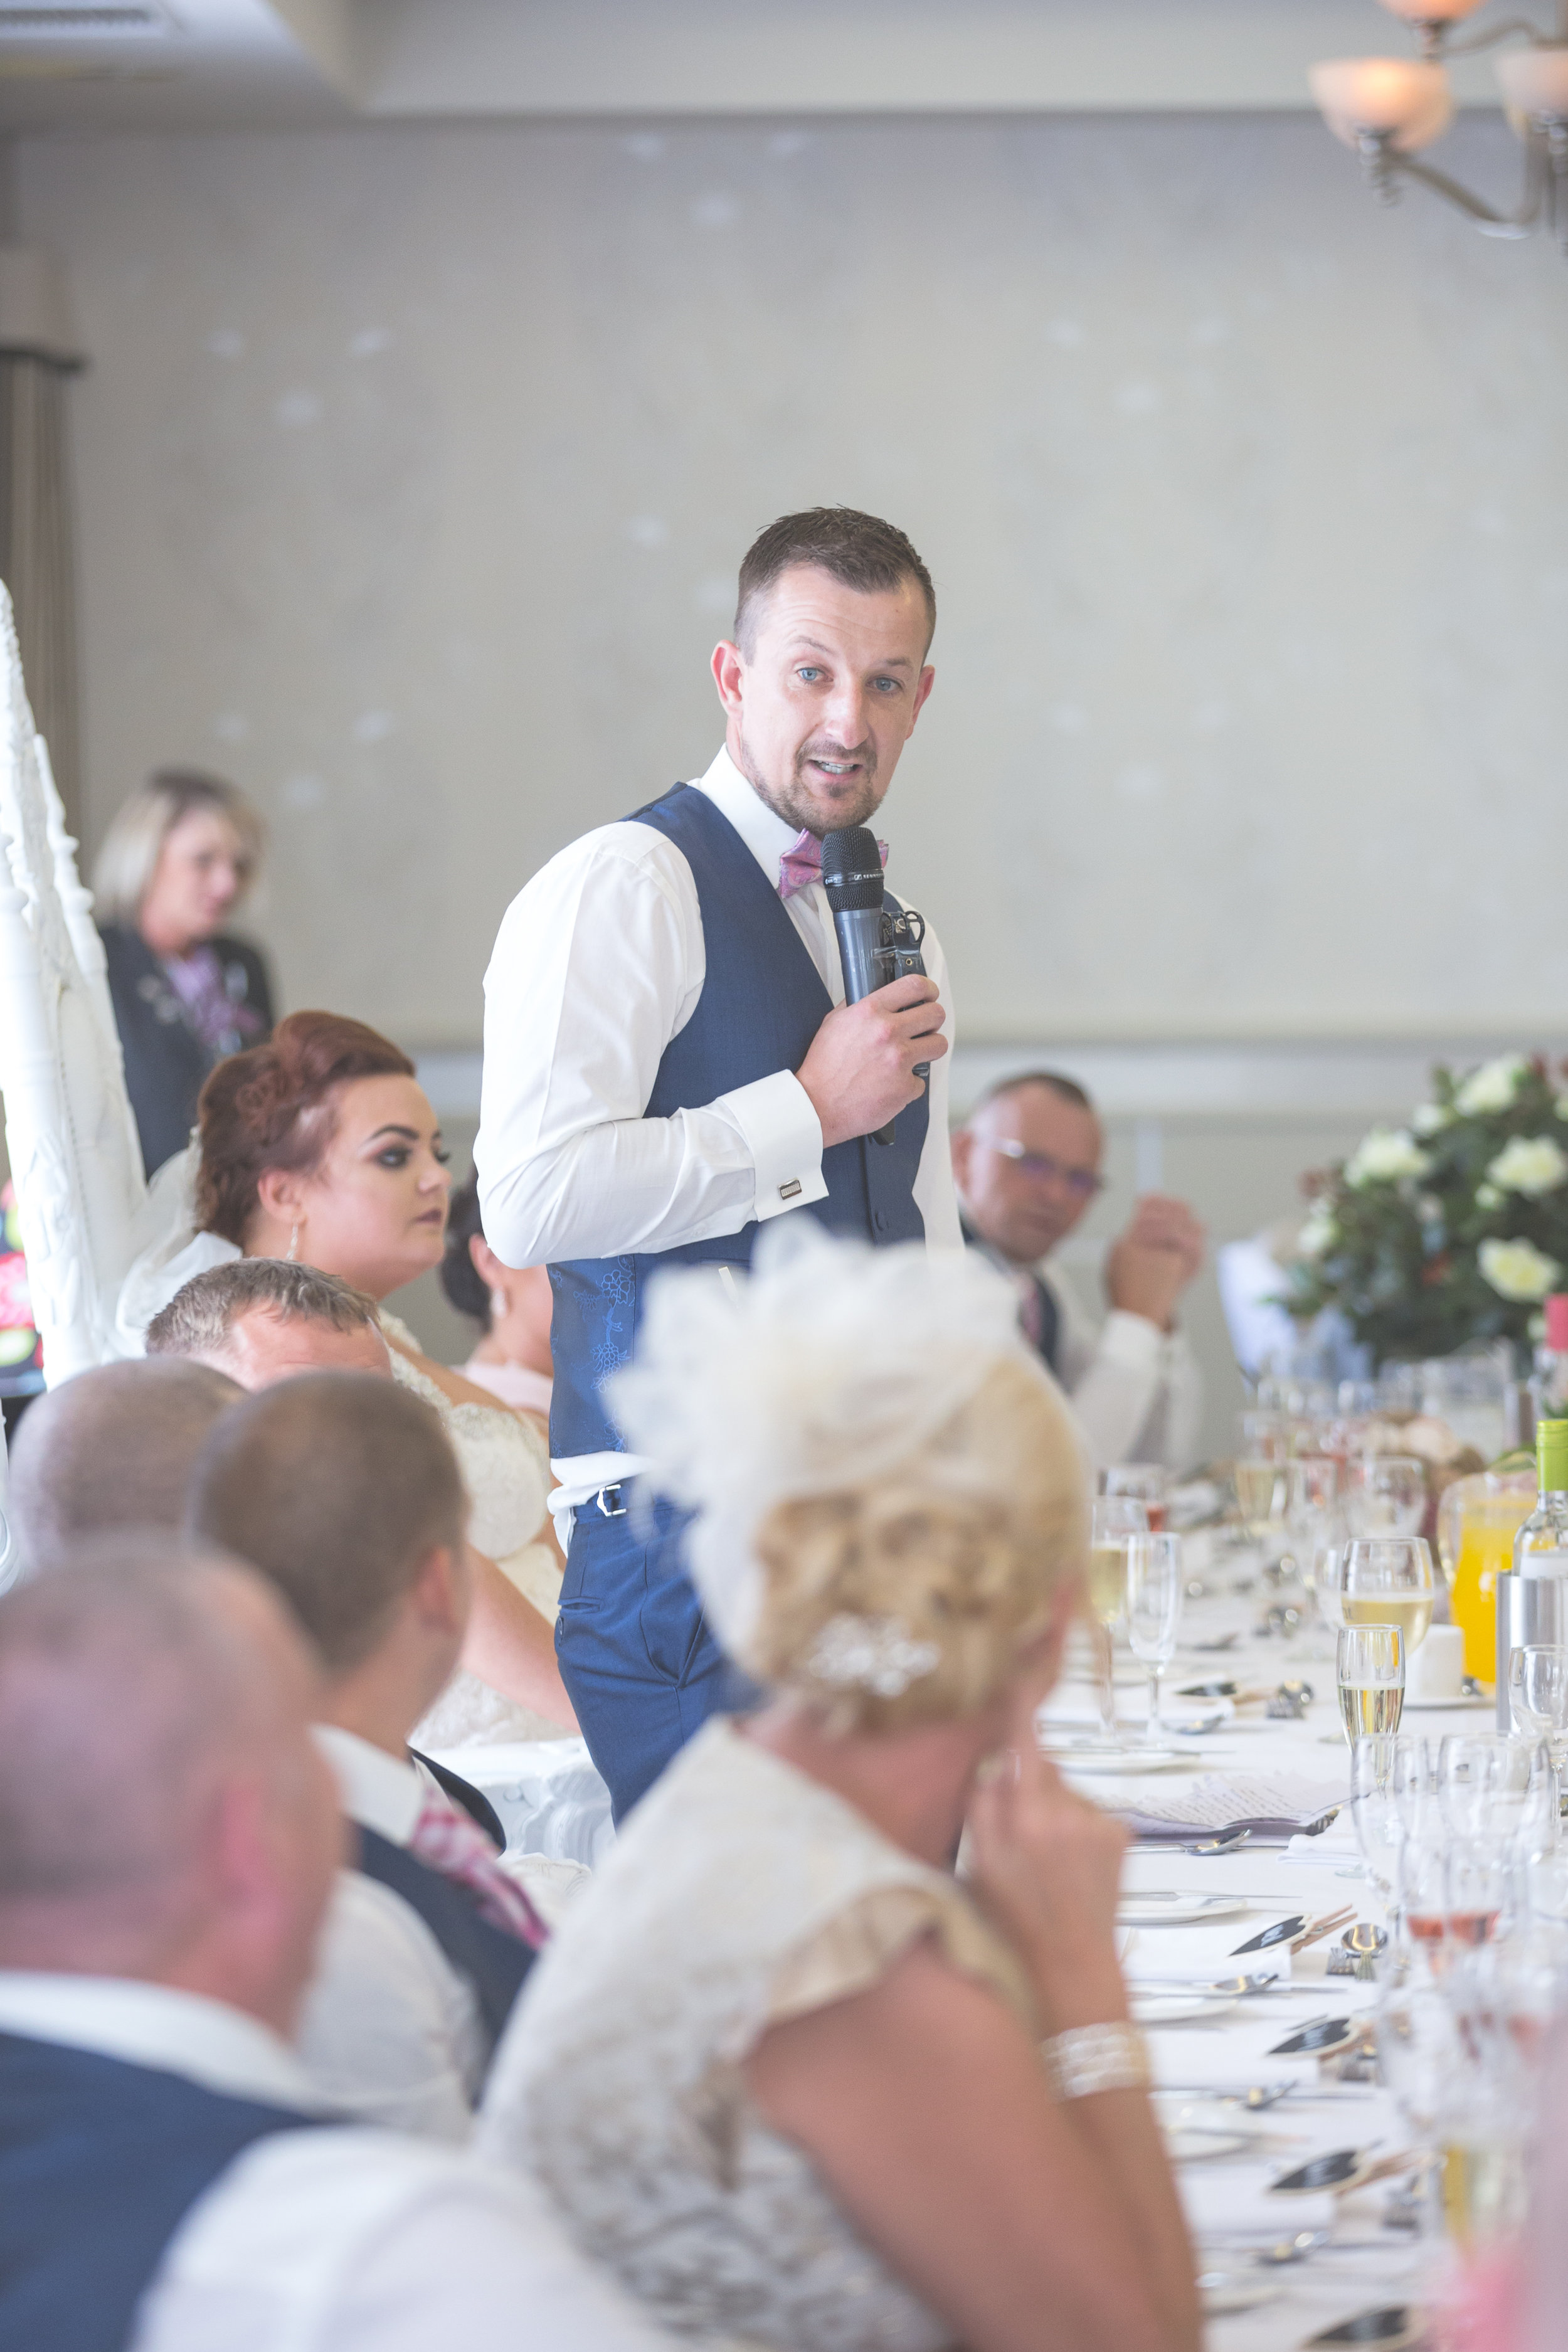 Antoinette & Stephen - Speeches | Brian McEwan Photography | Wedding Photographer Northern Ireland 63.jpg